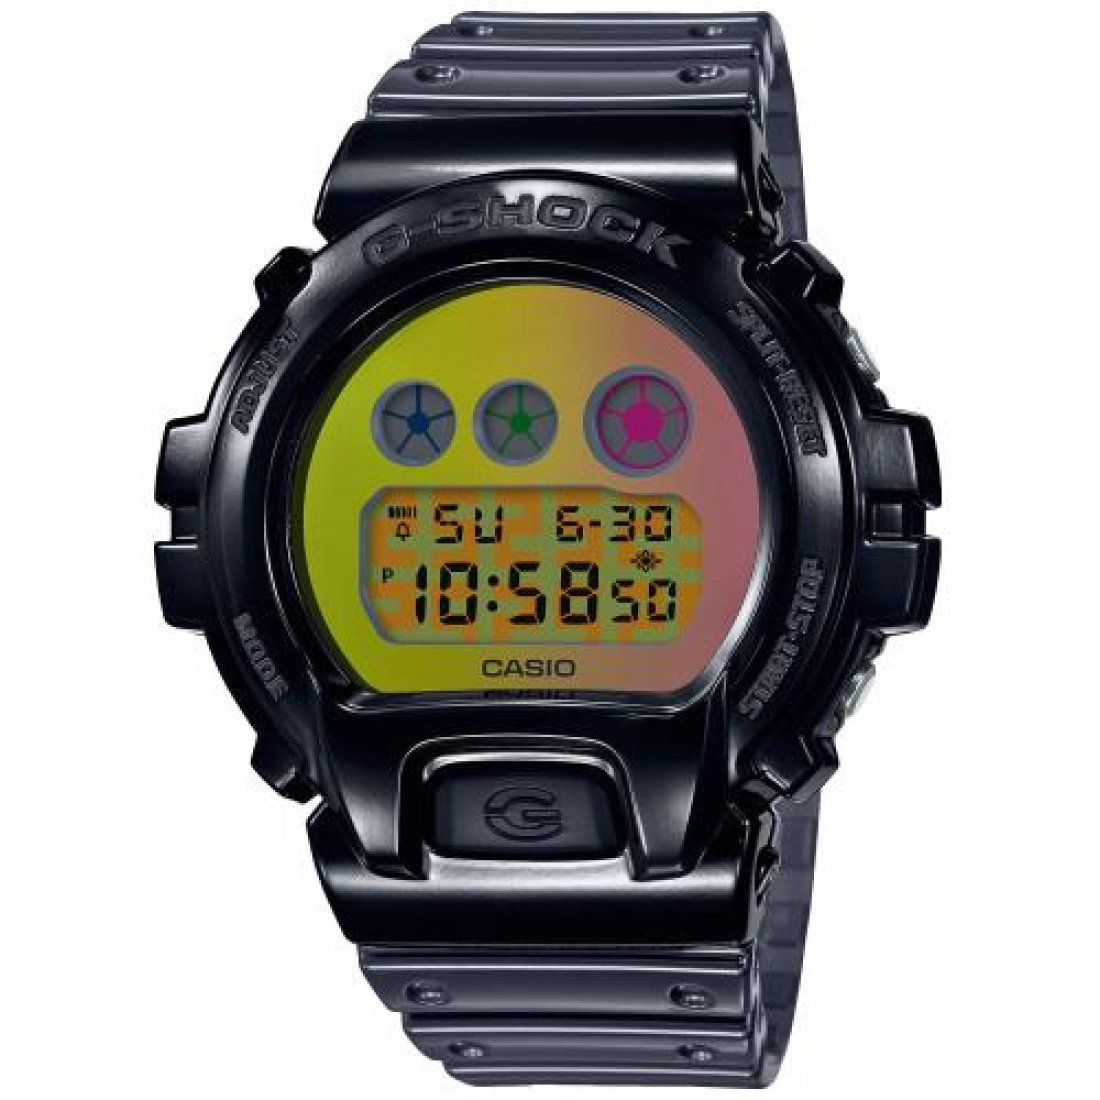 Casio G-Shock DW-6900SP-1ER